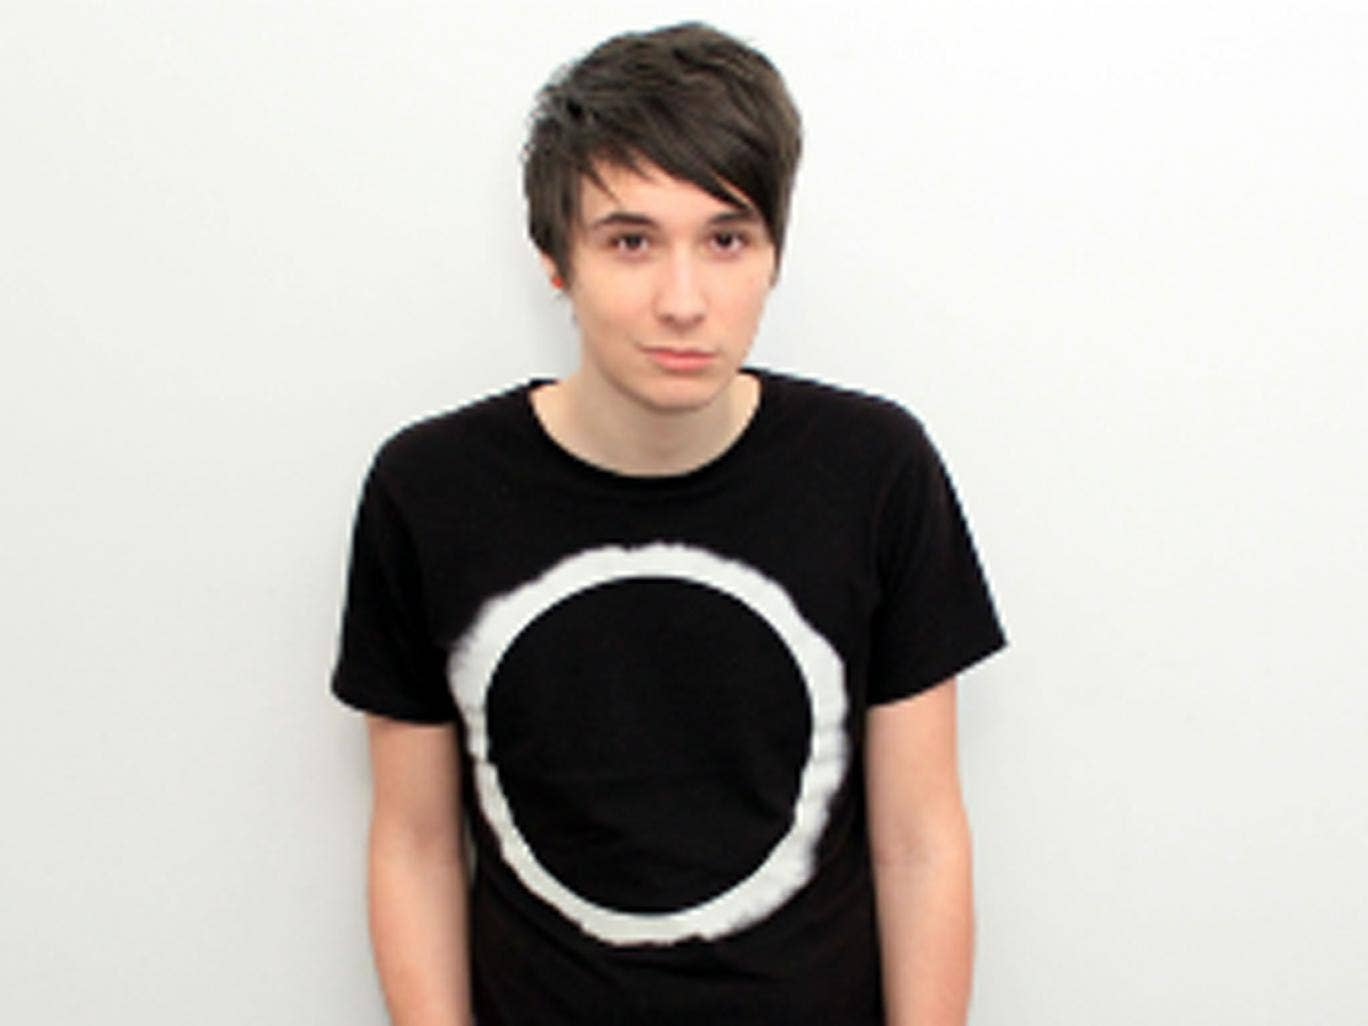 Dan Howell, who has 2.4m subscribers to his Dan is Not on Fire YouTube channel, will be hosting in BBC Radio 1 with Phil Lester